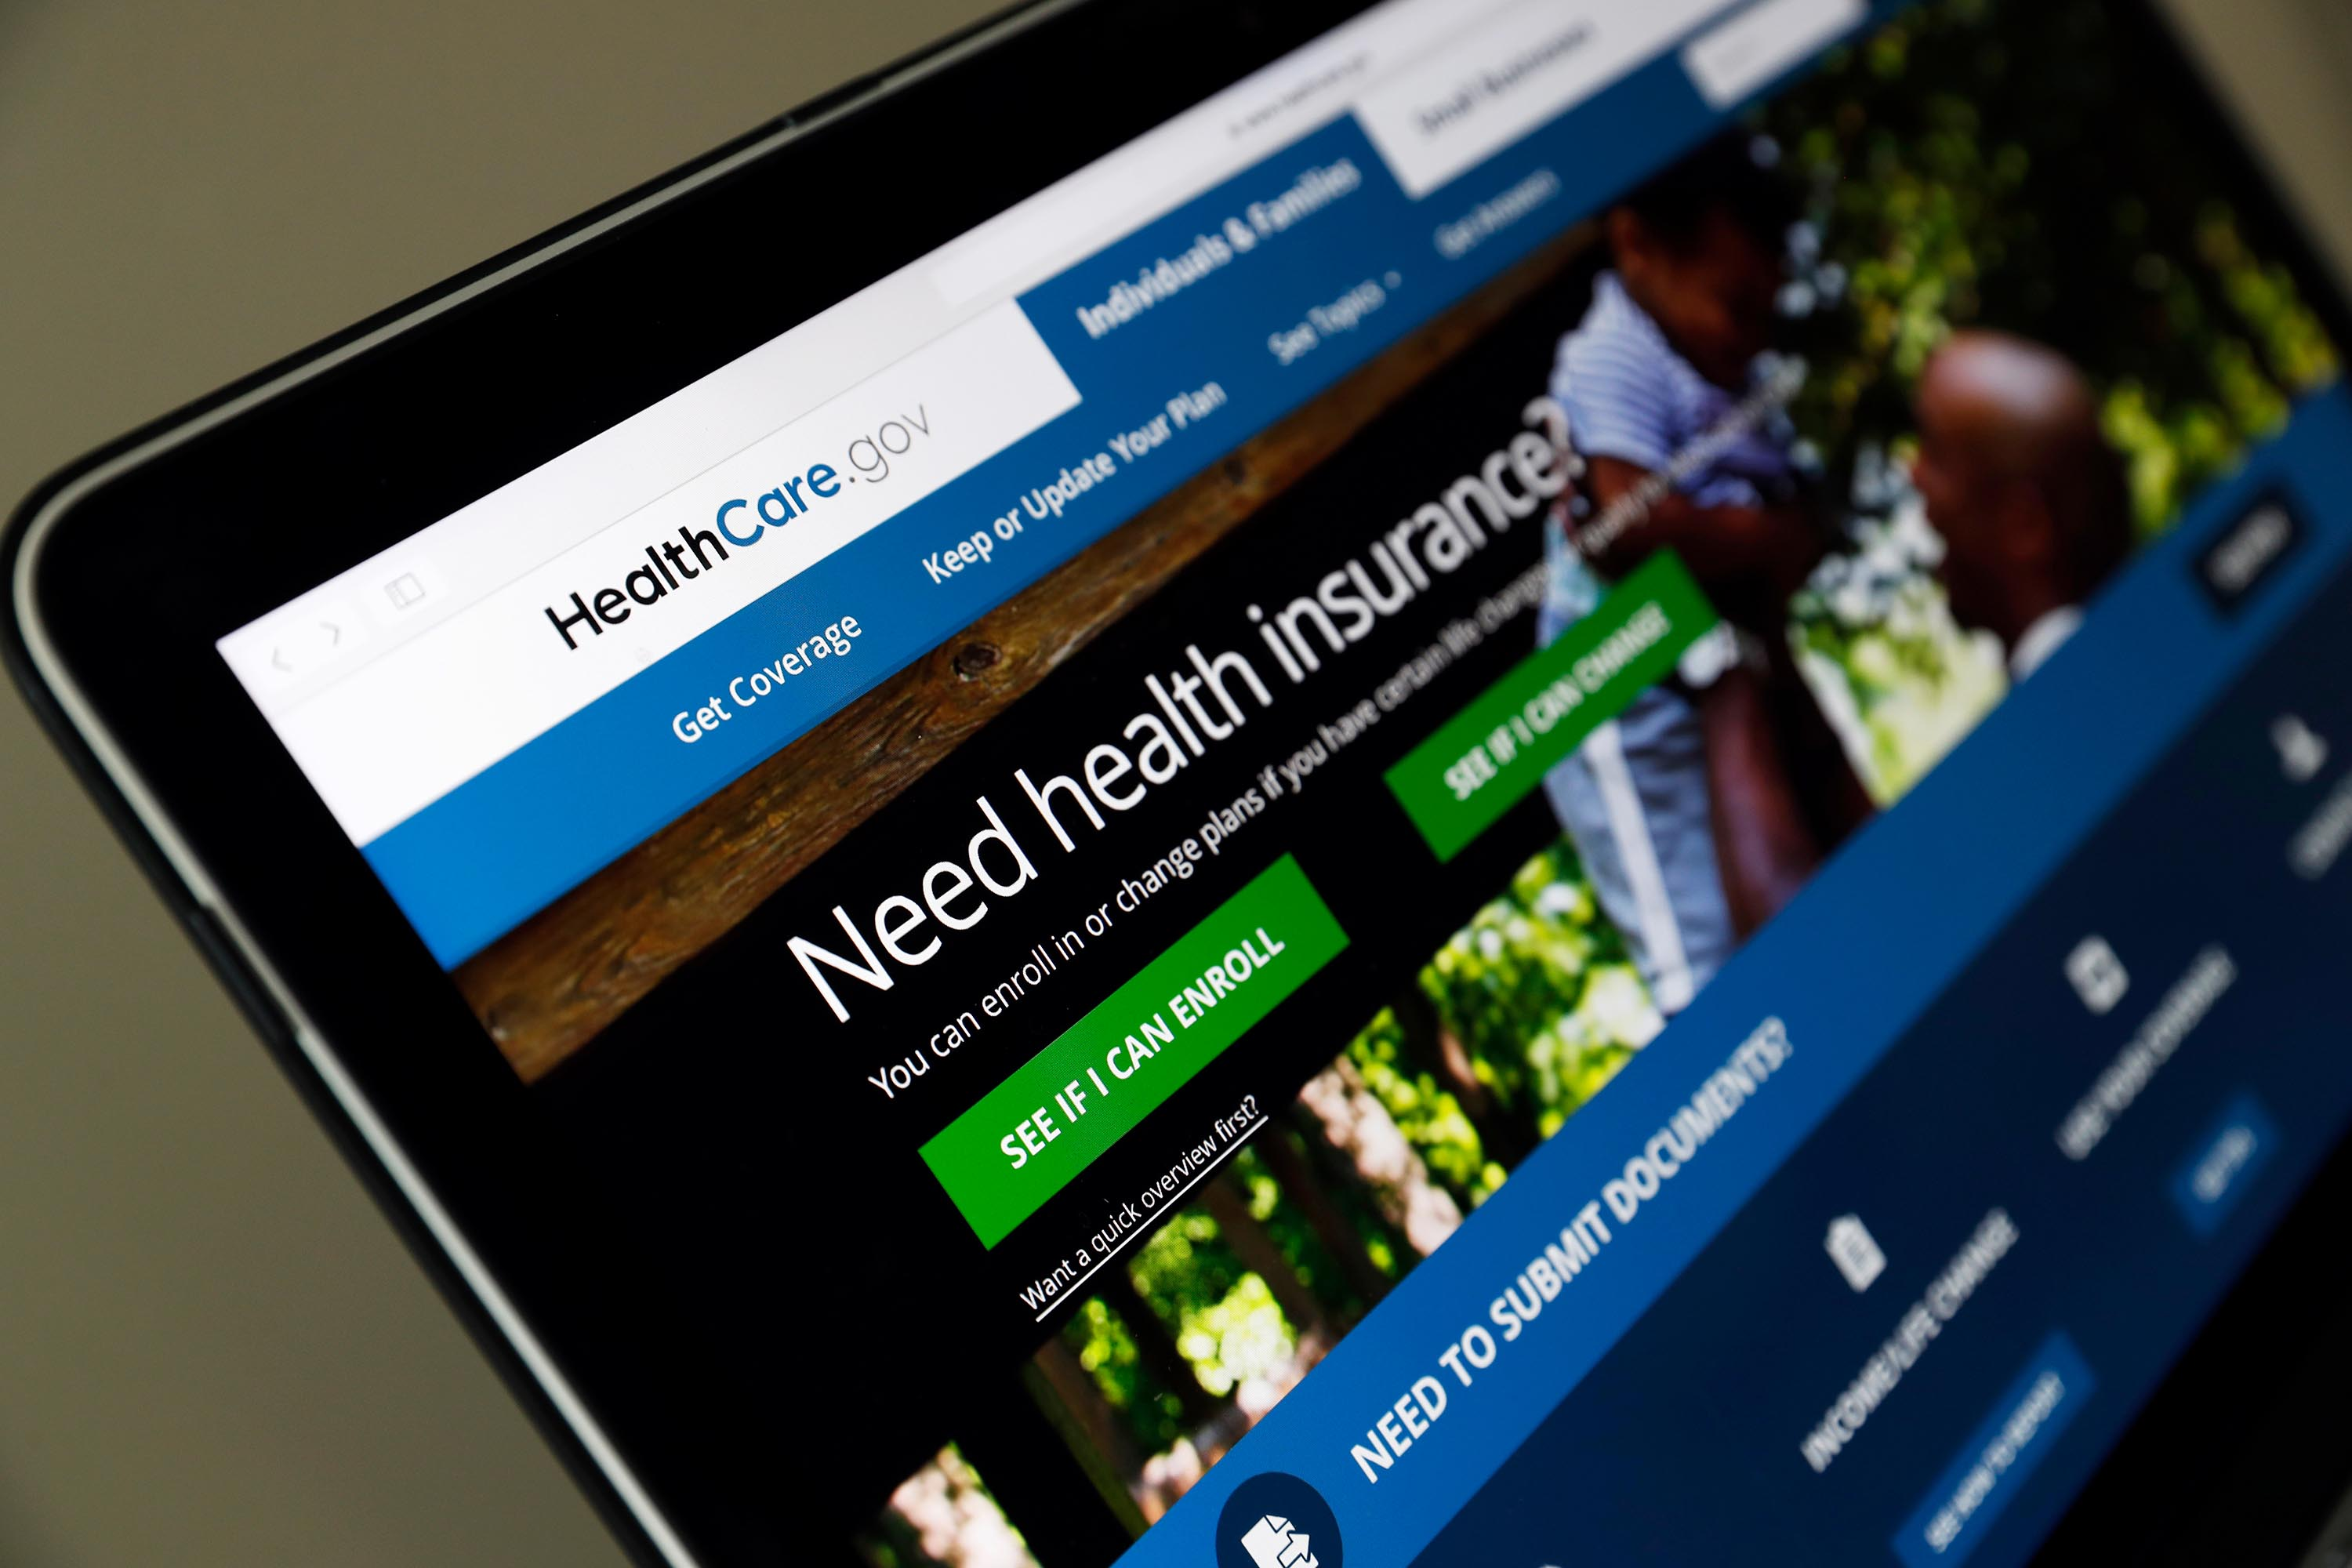 Obamacare premiums decline for 3rd year in a row as Trump seeks to take down the landmark law